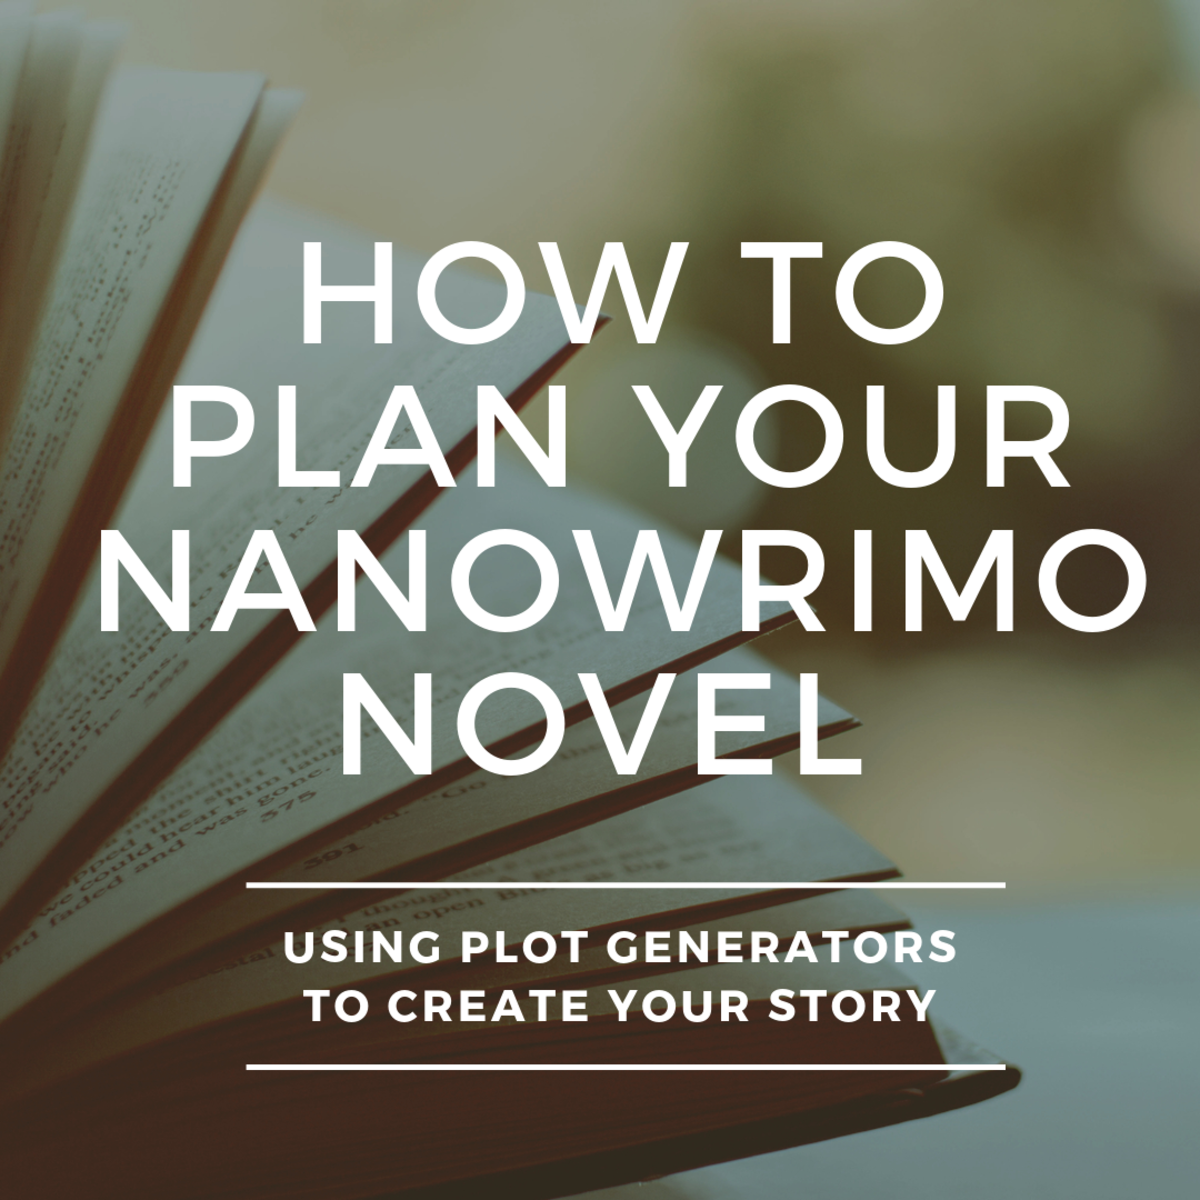 Try these online generators to develop your story.